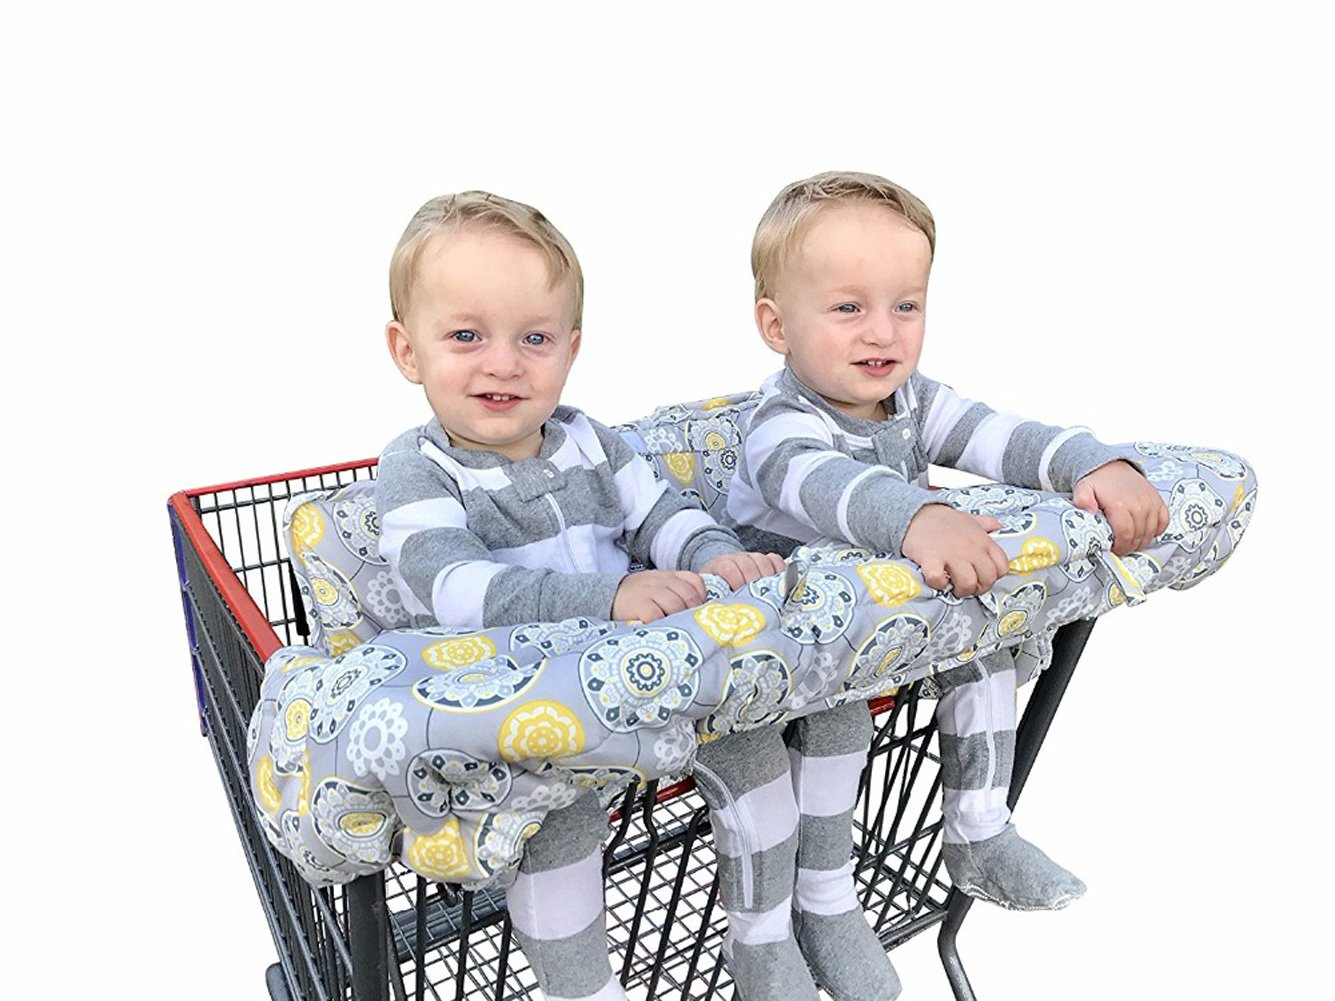 ZXYWW Twin Double Shopping Cart Cover for Baby Siblings 4 Leg Holes High Chair Trolley Pad Extra-Large Size-Yellow Flower